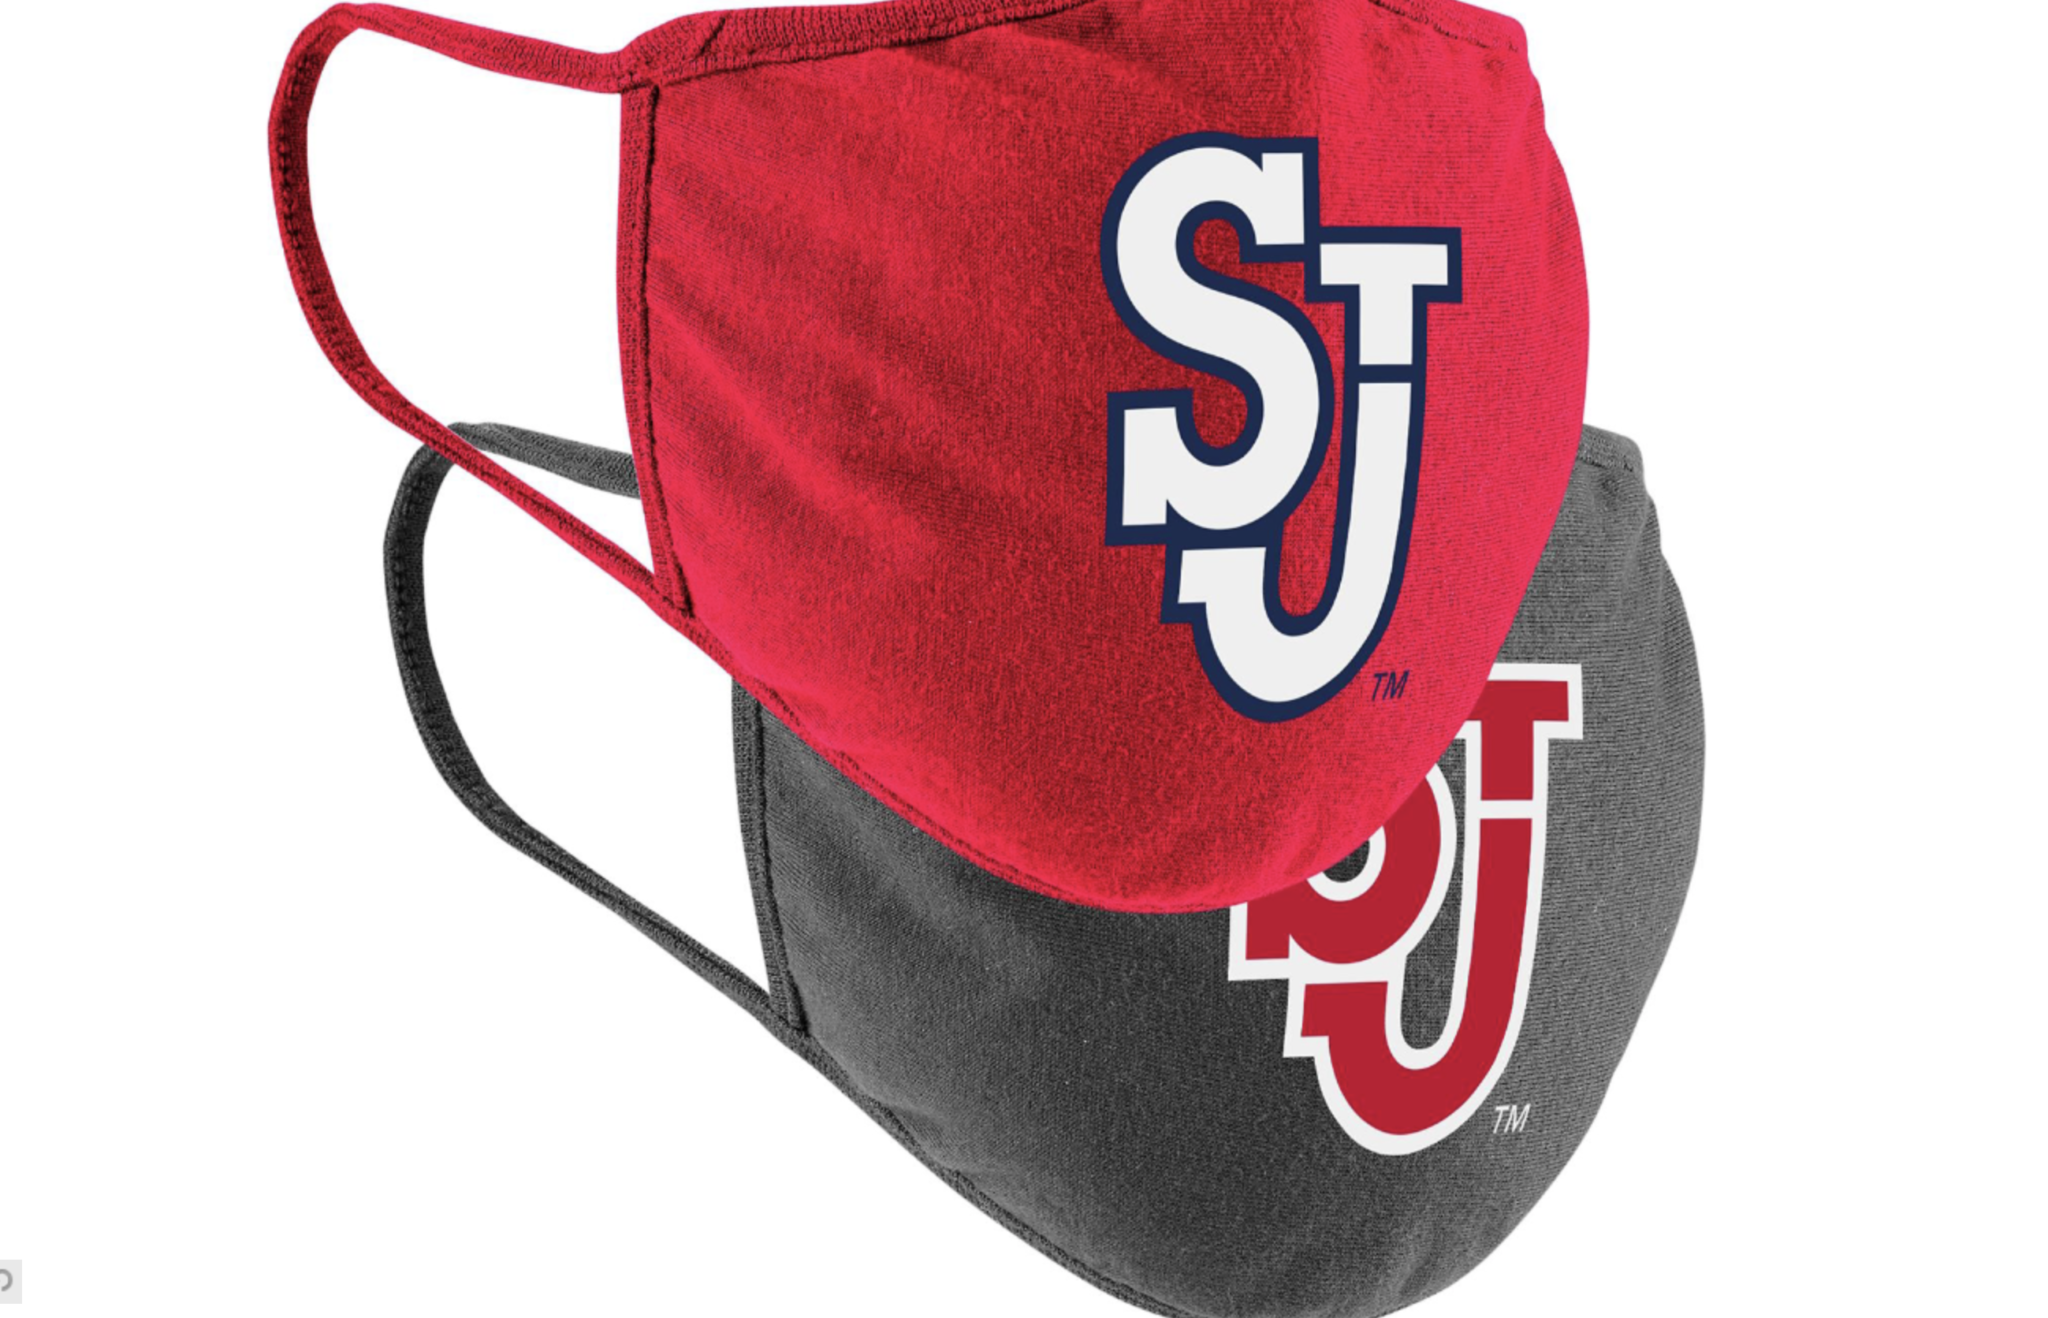 red and gray SJU face masks